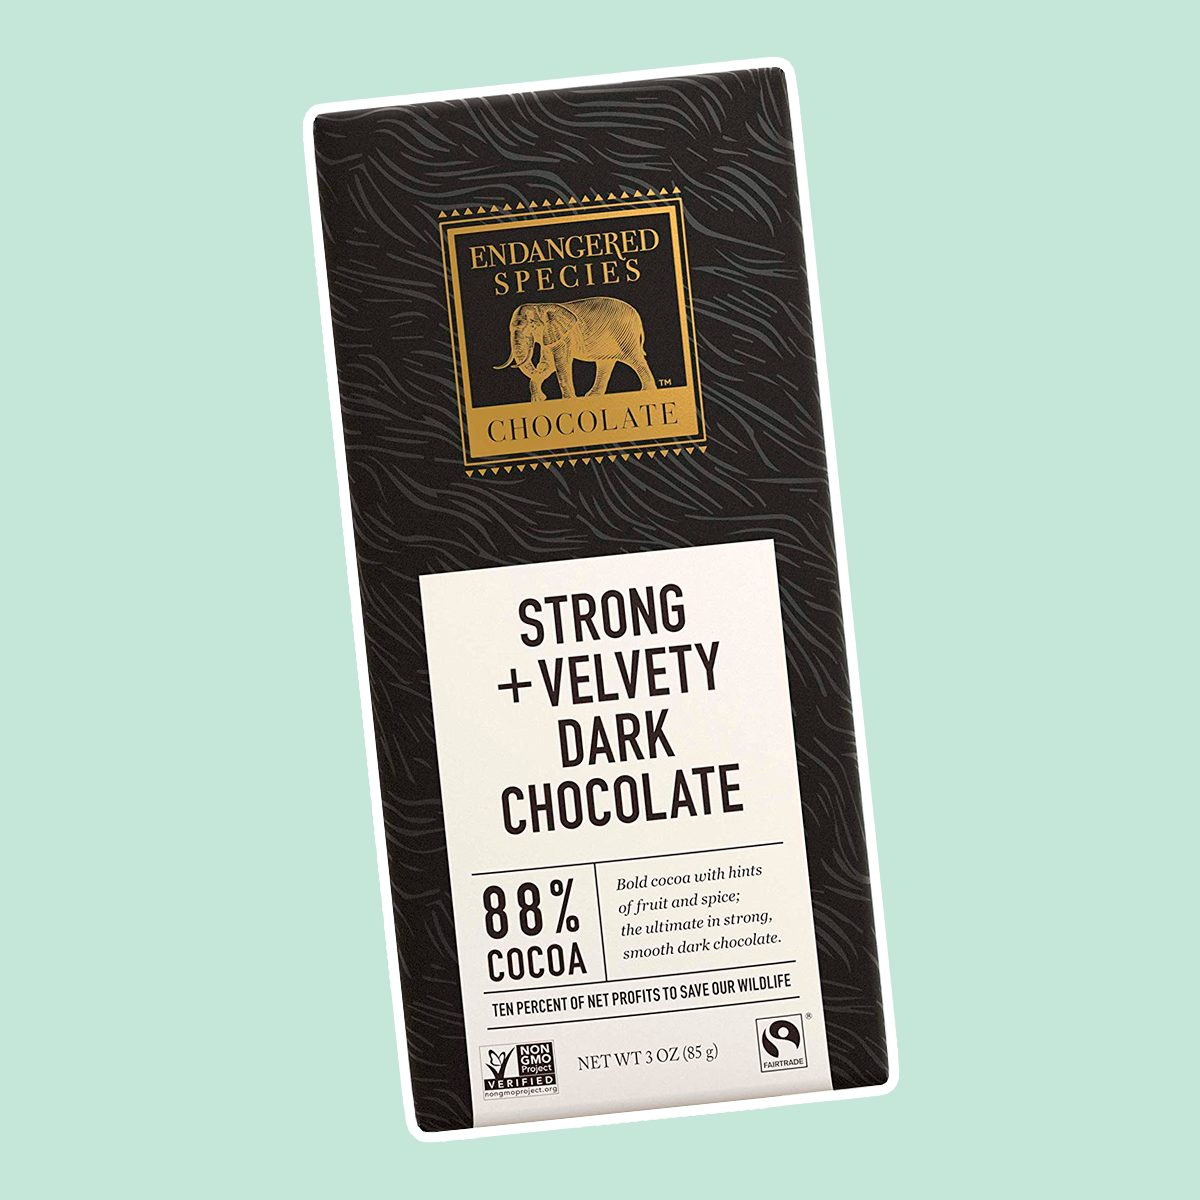 Endangered Species Panther, Fair Trade Dark Chocolate Bar, 88% Cocoa